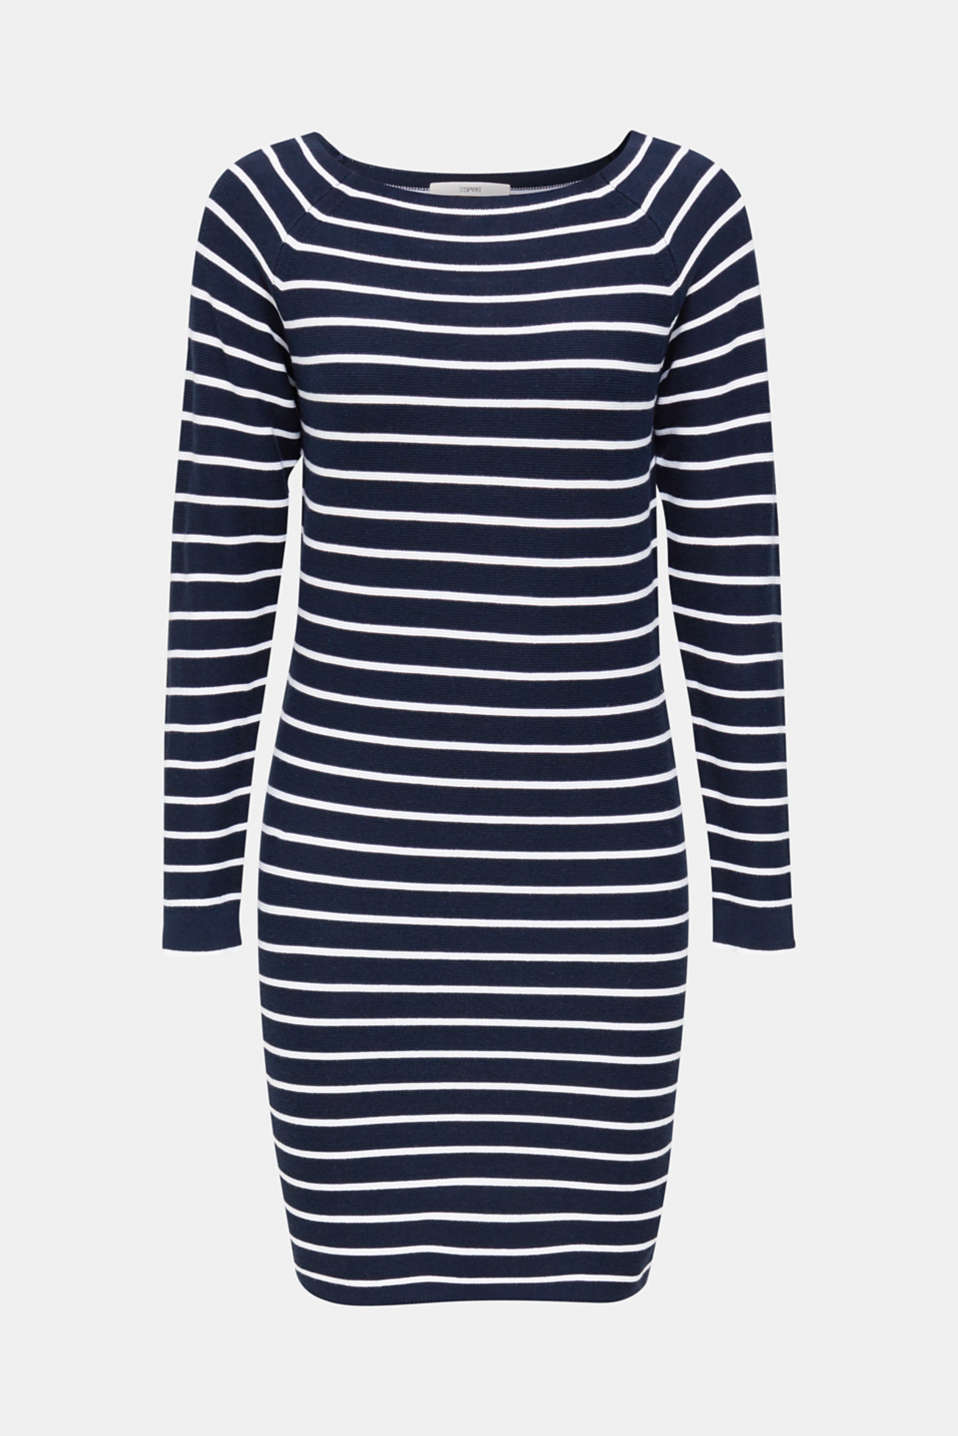 Knit dress with stripes, 100% cotton, NAVY 4, detail image number 6